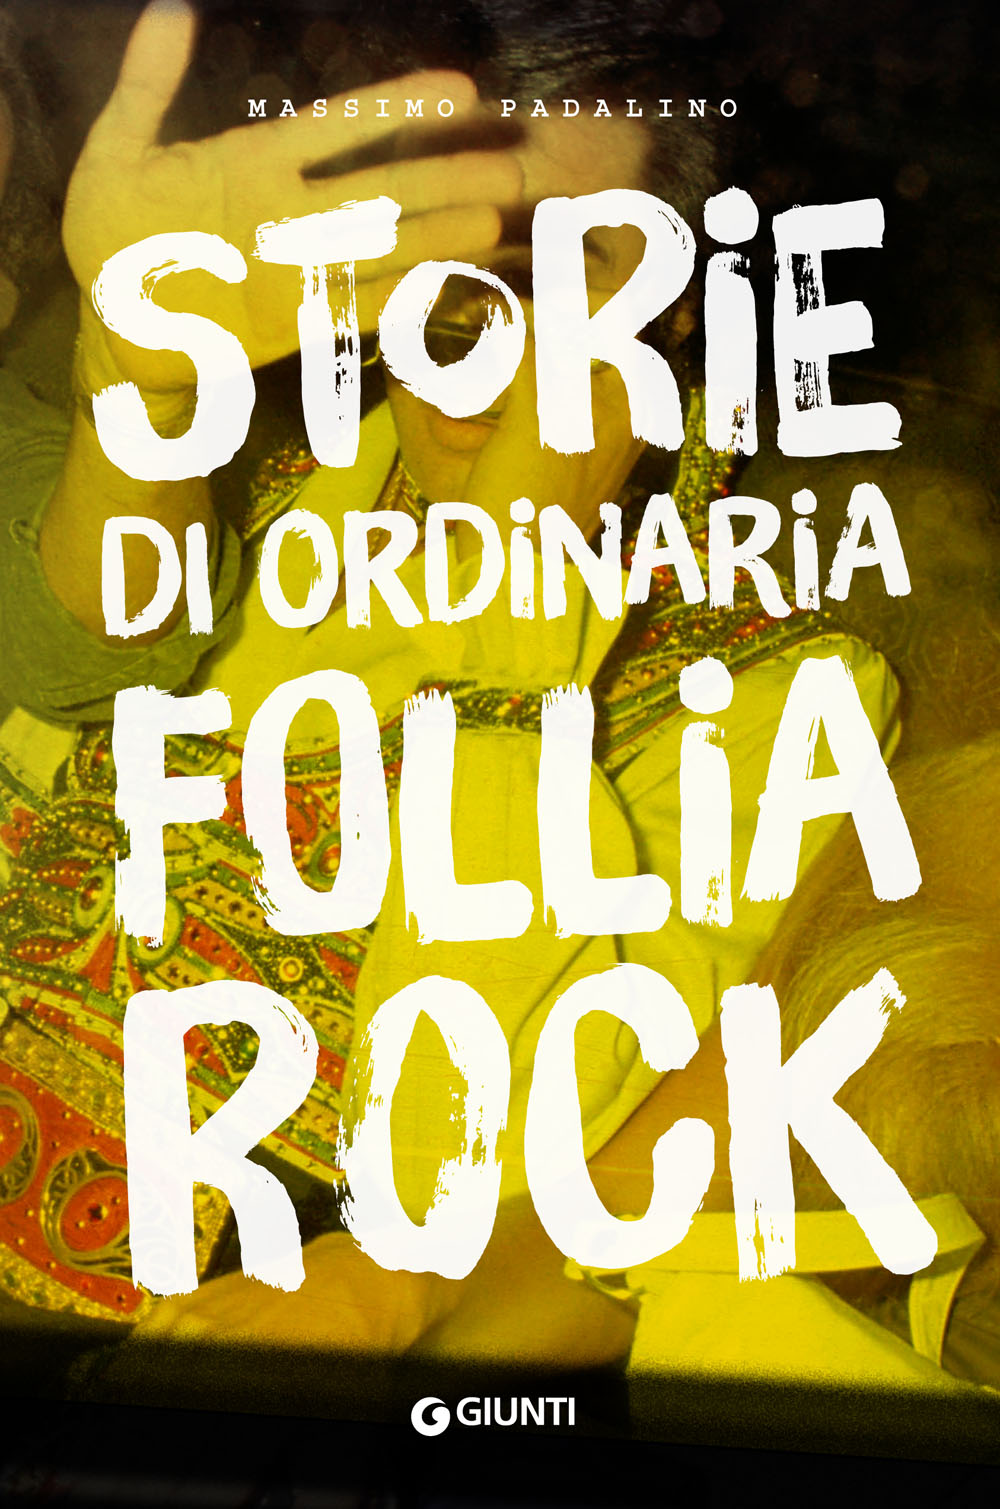 Storie di ordinaria follia rock